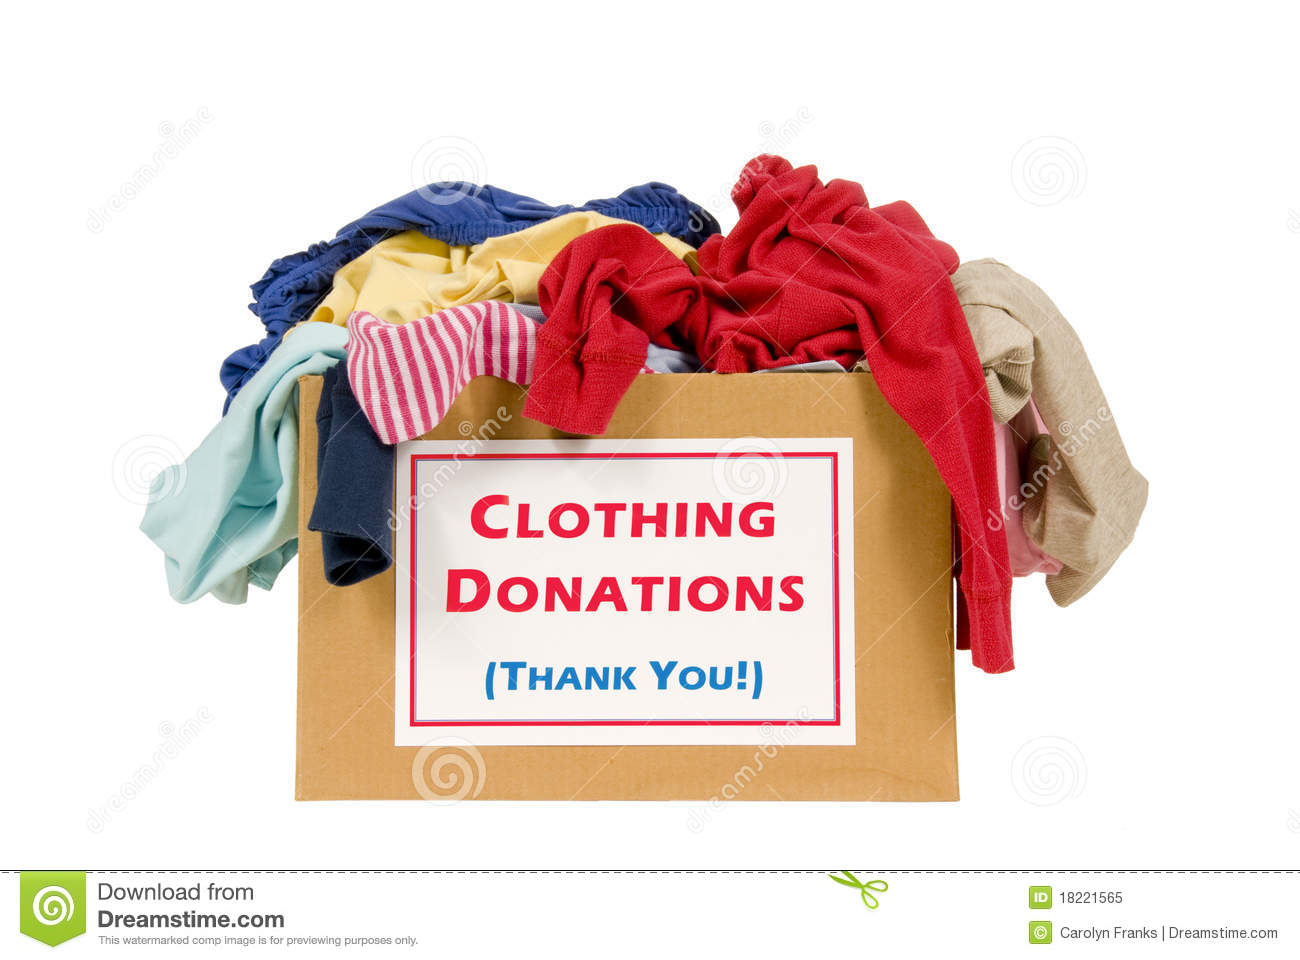 Clothing Drive - Help us recycle gently used clothing!